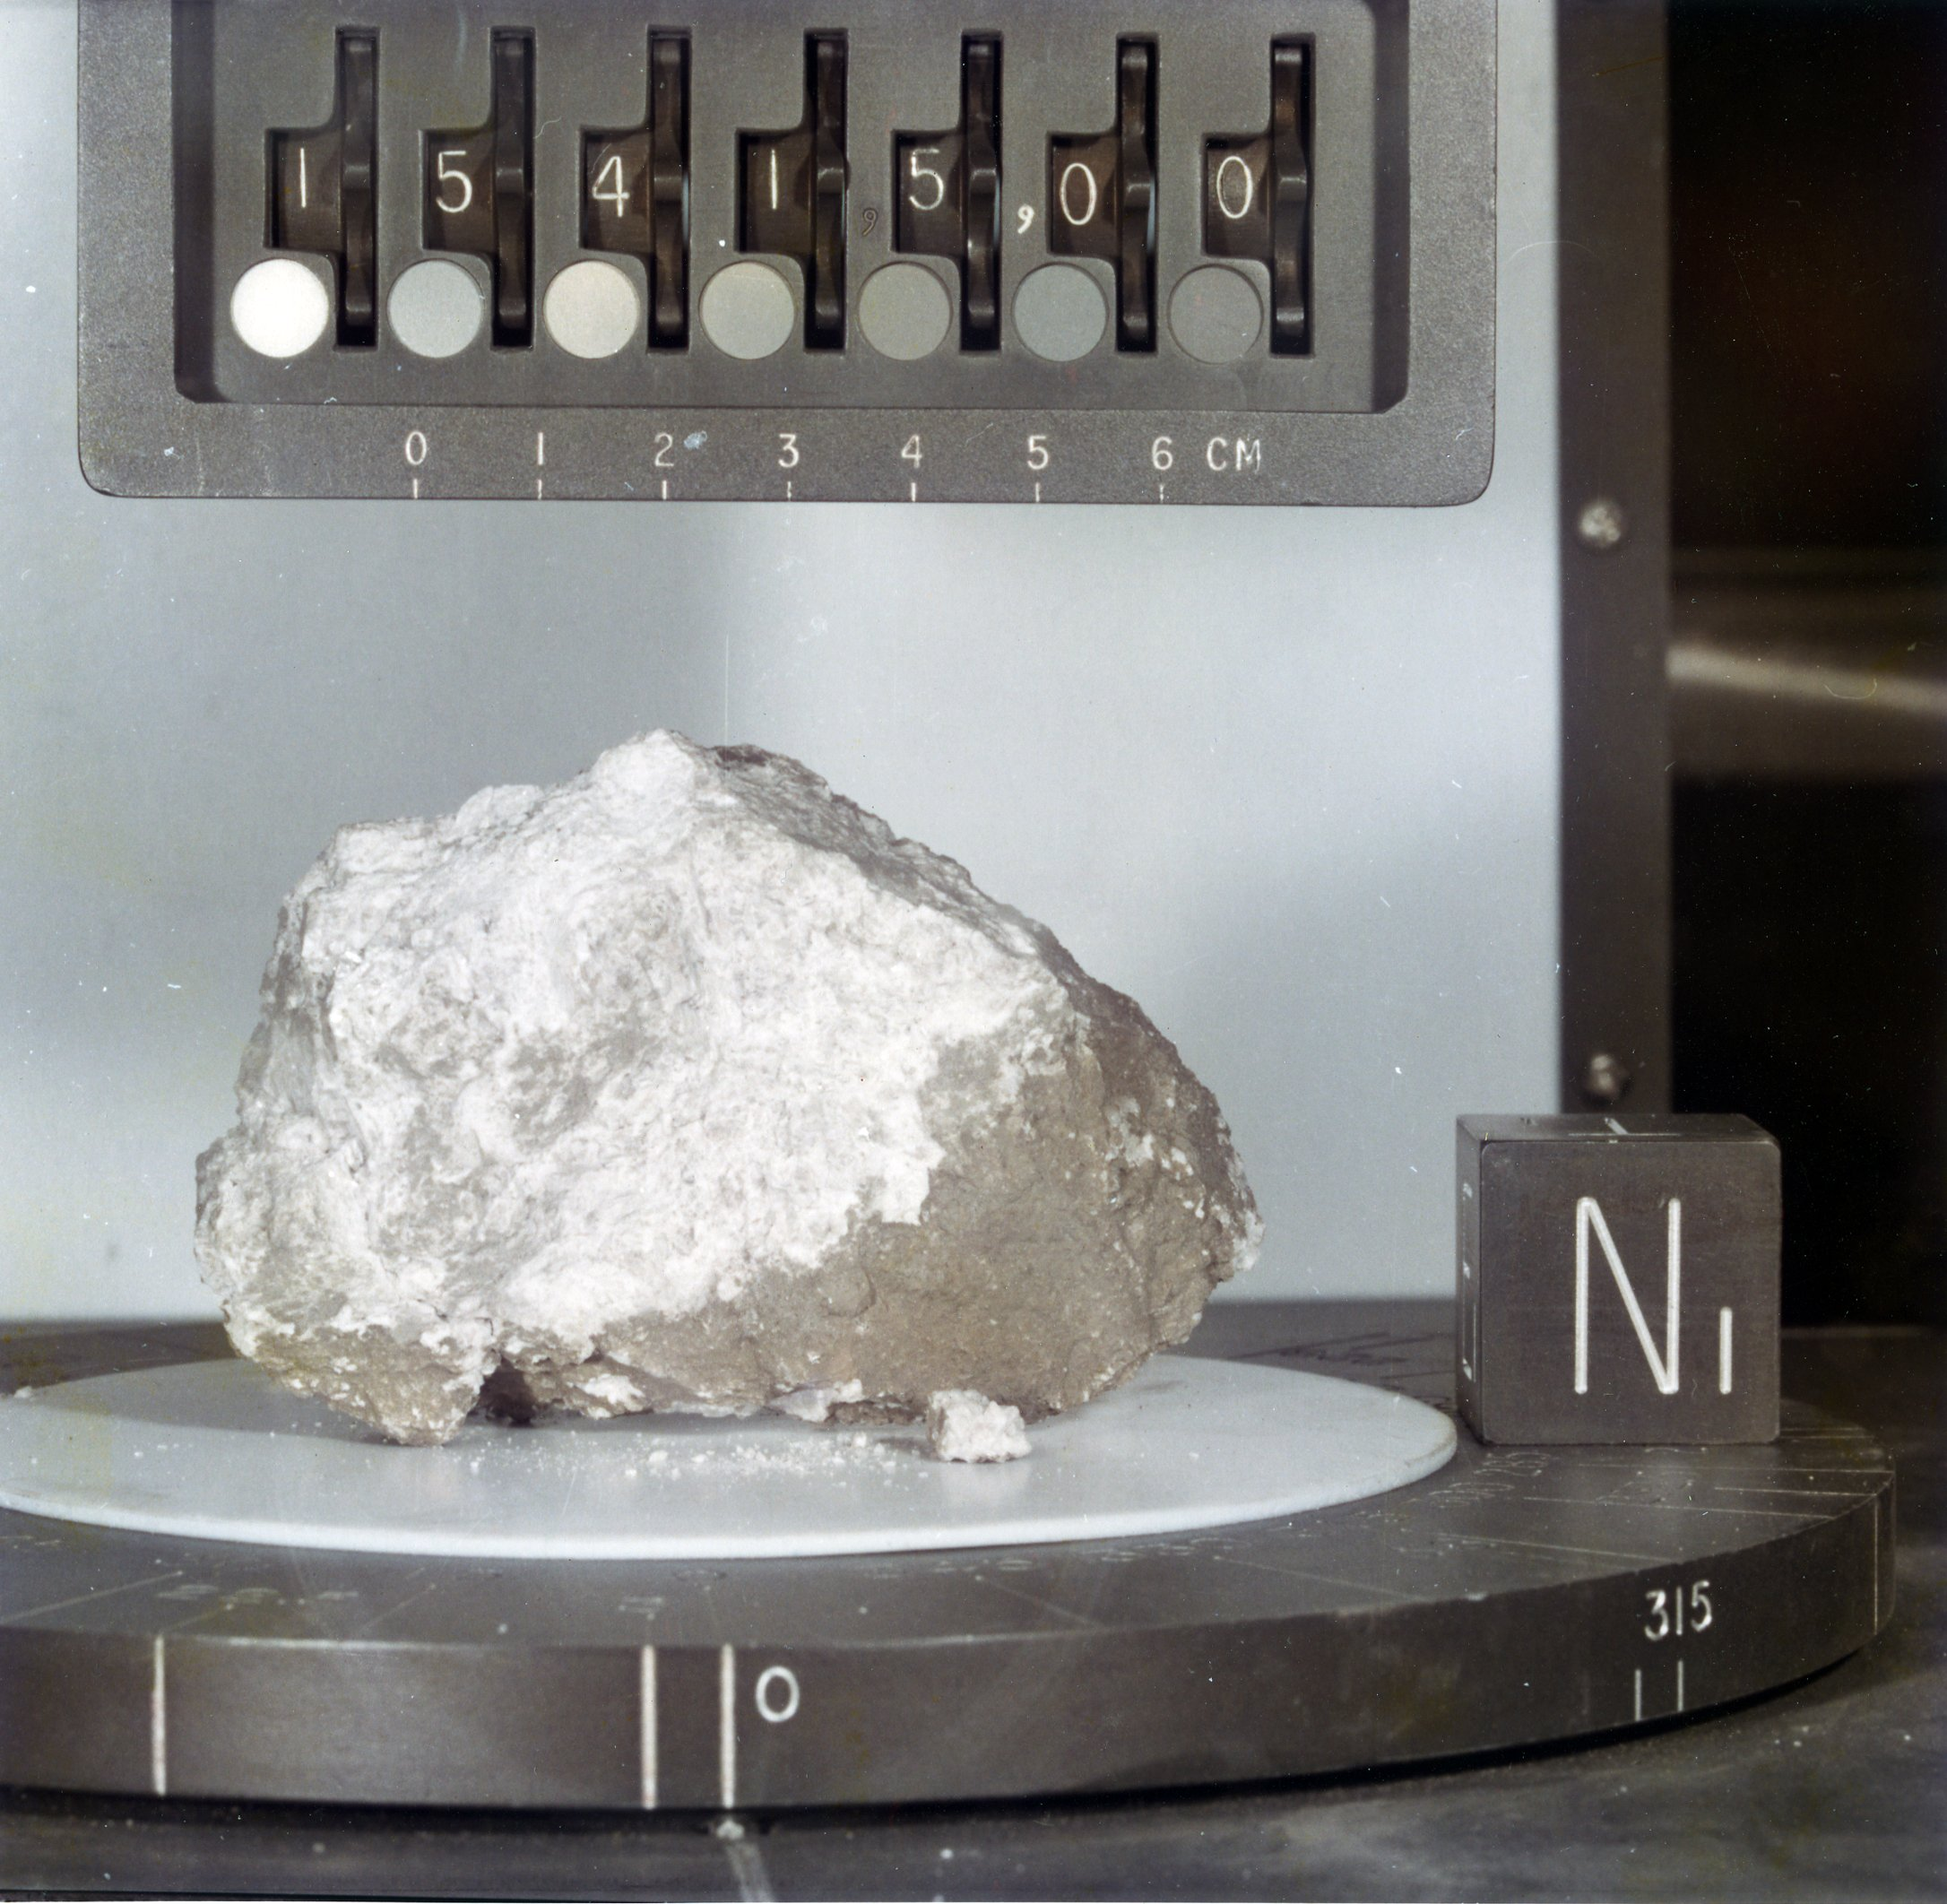 Apollo Moon Rocks Challenge Lunar Water Theory